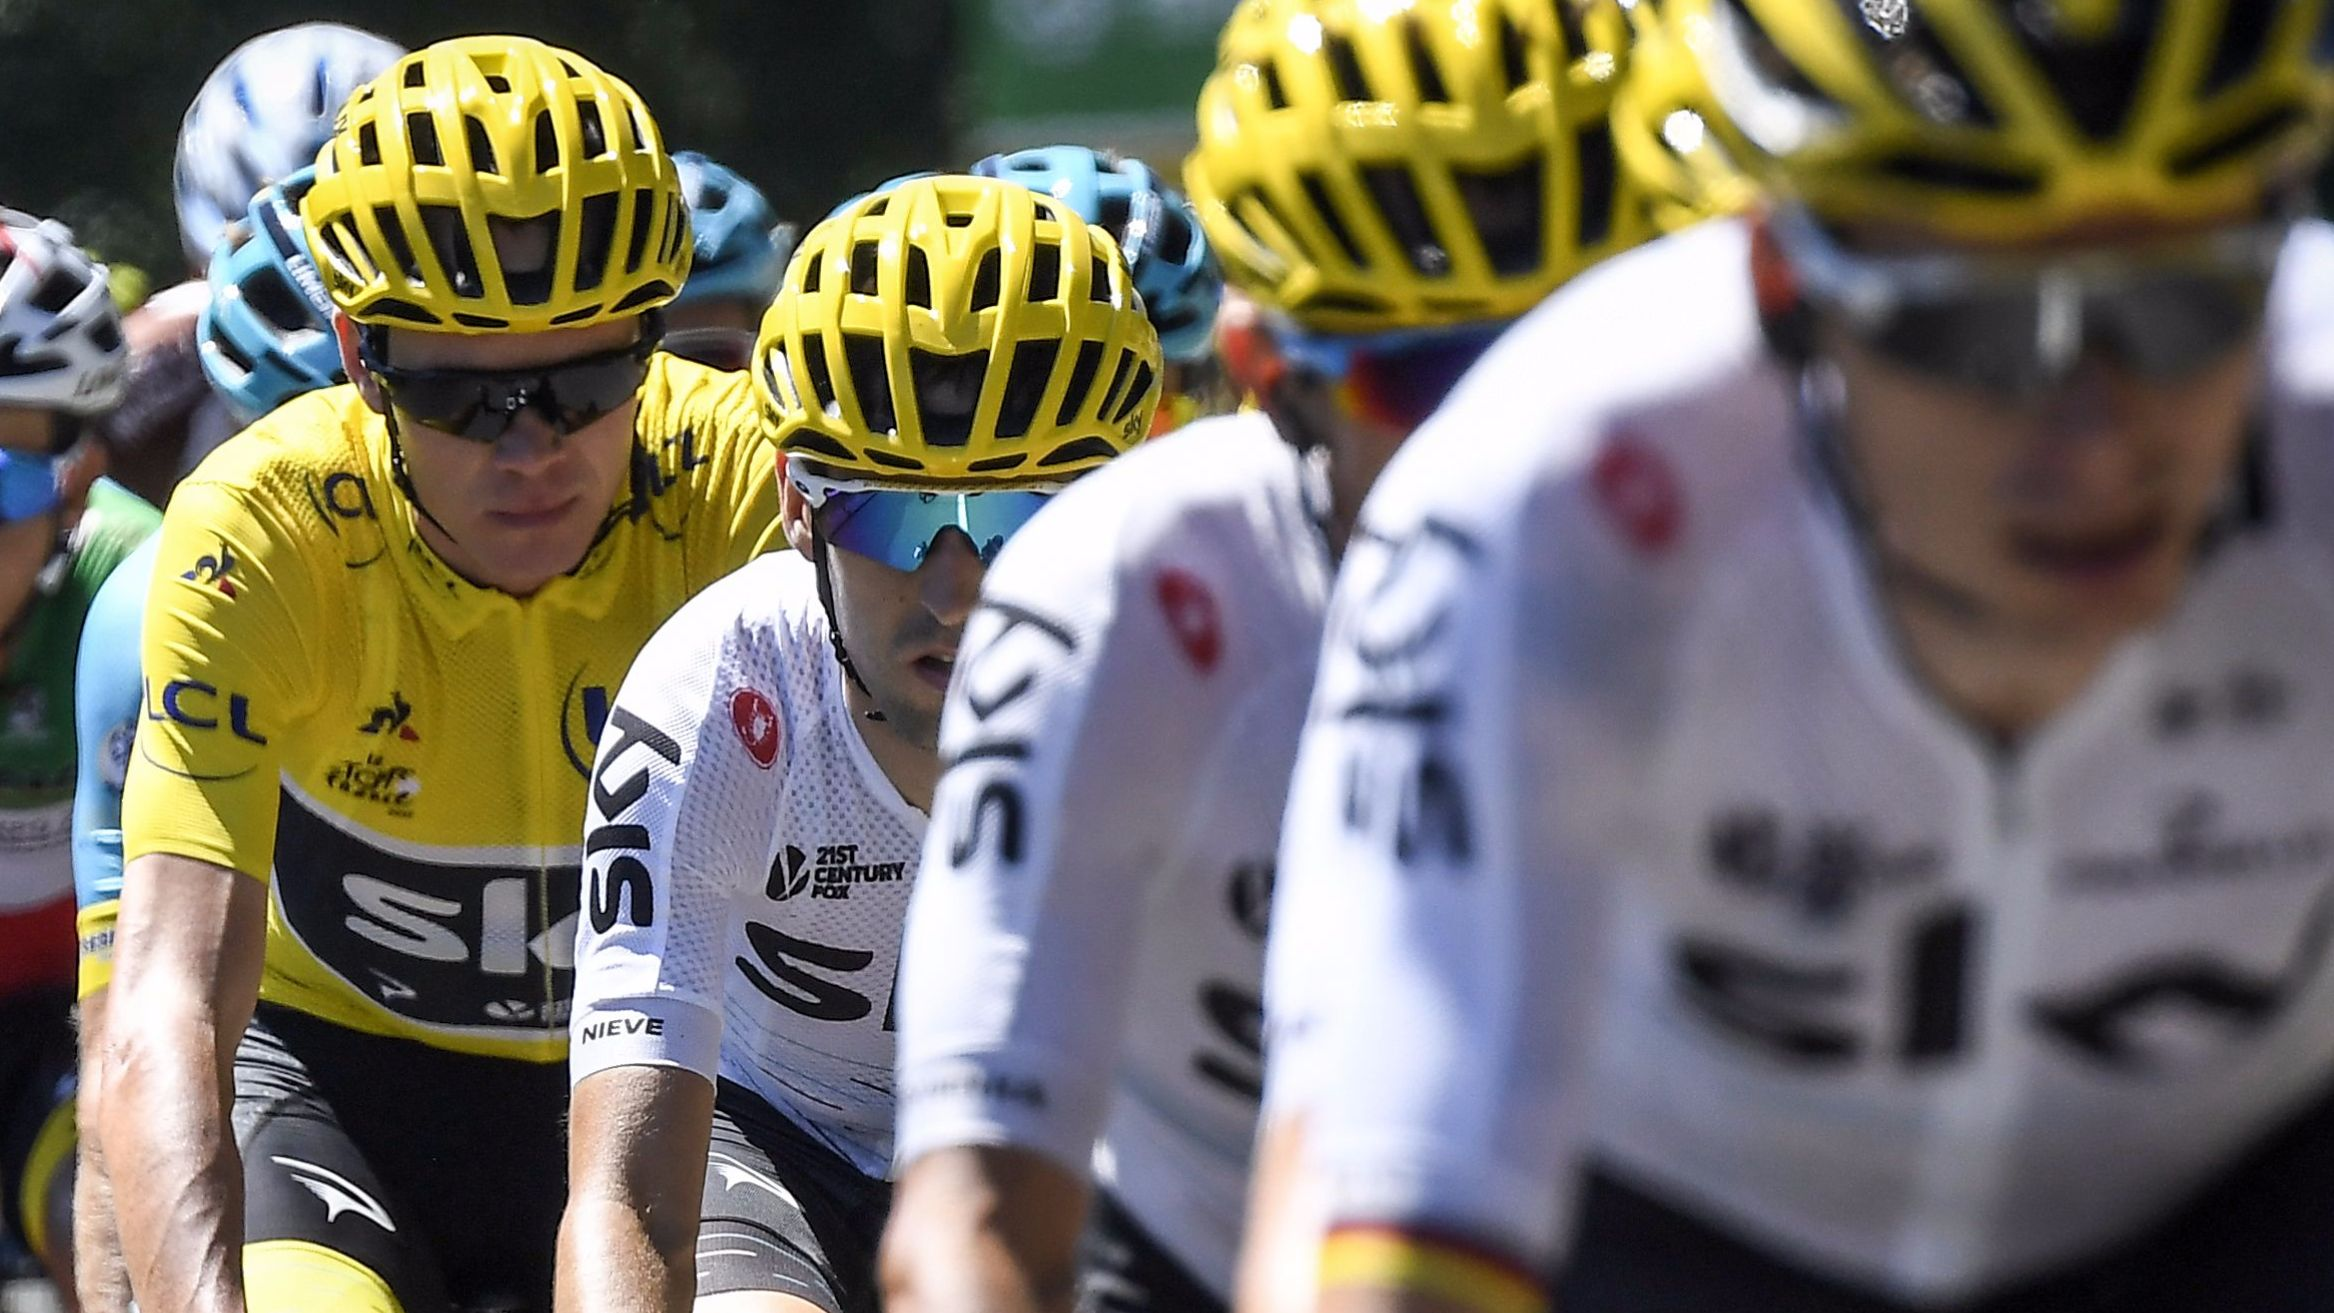 Tour de France  Bauke Mollema wins stage 15 as Chris Froome keeps yellow  jersey - BBC Sport 3a68acec1